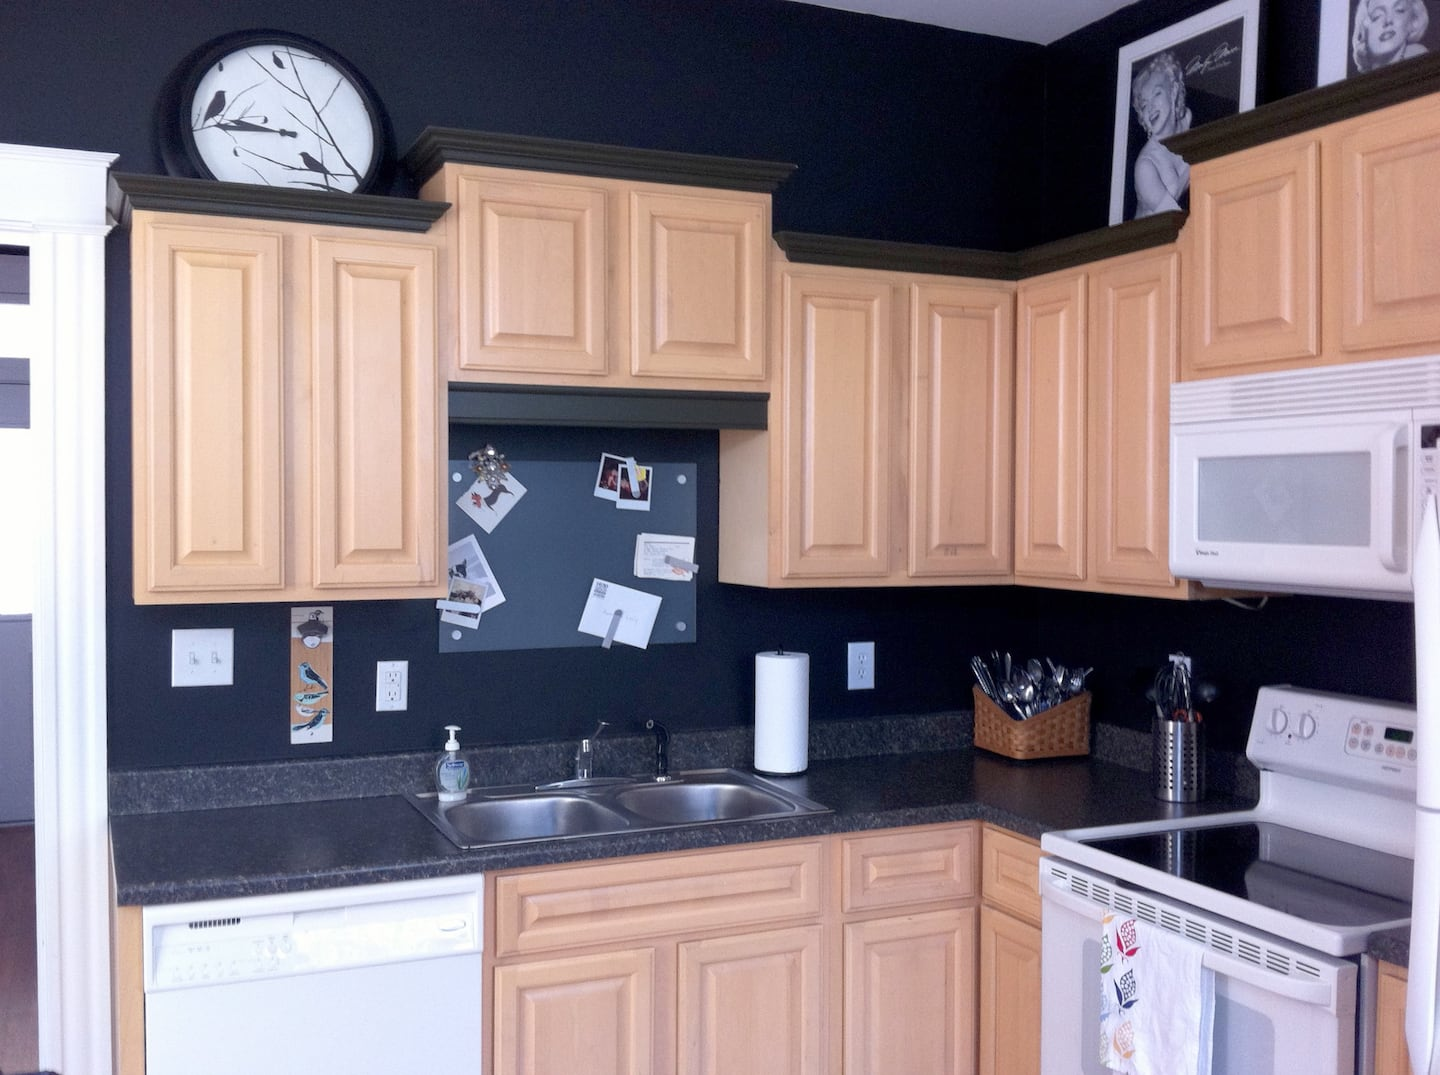 Painting Kitchen Cabinets Before And After With Wood Dark Countertop Backsplash